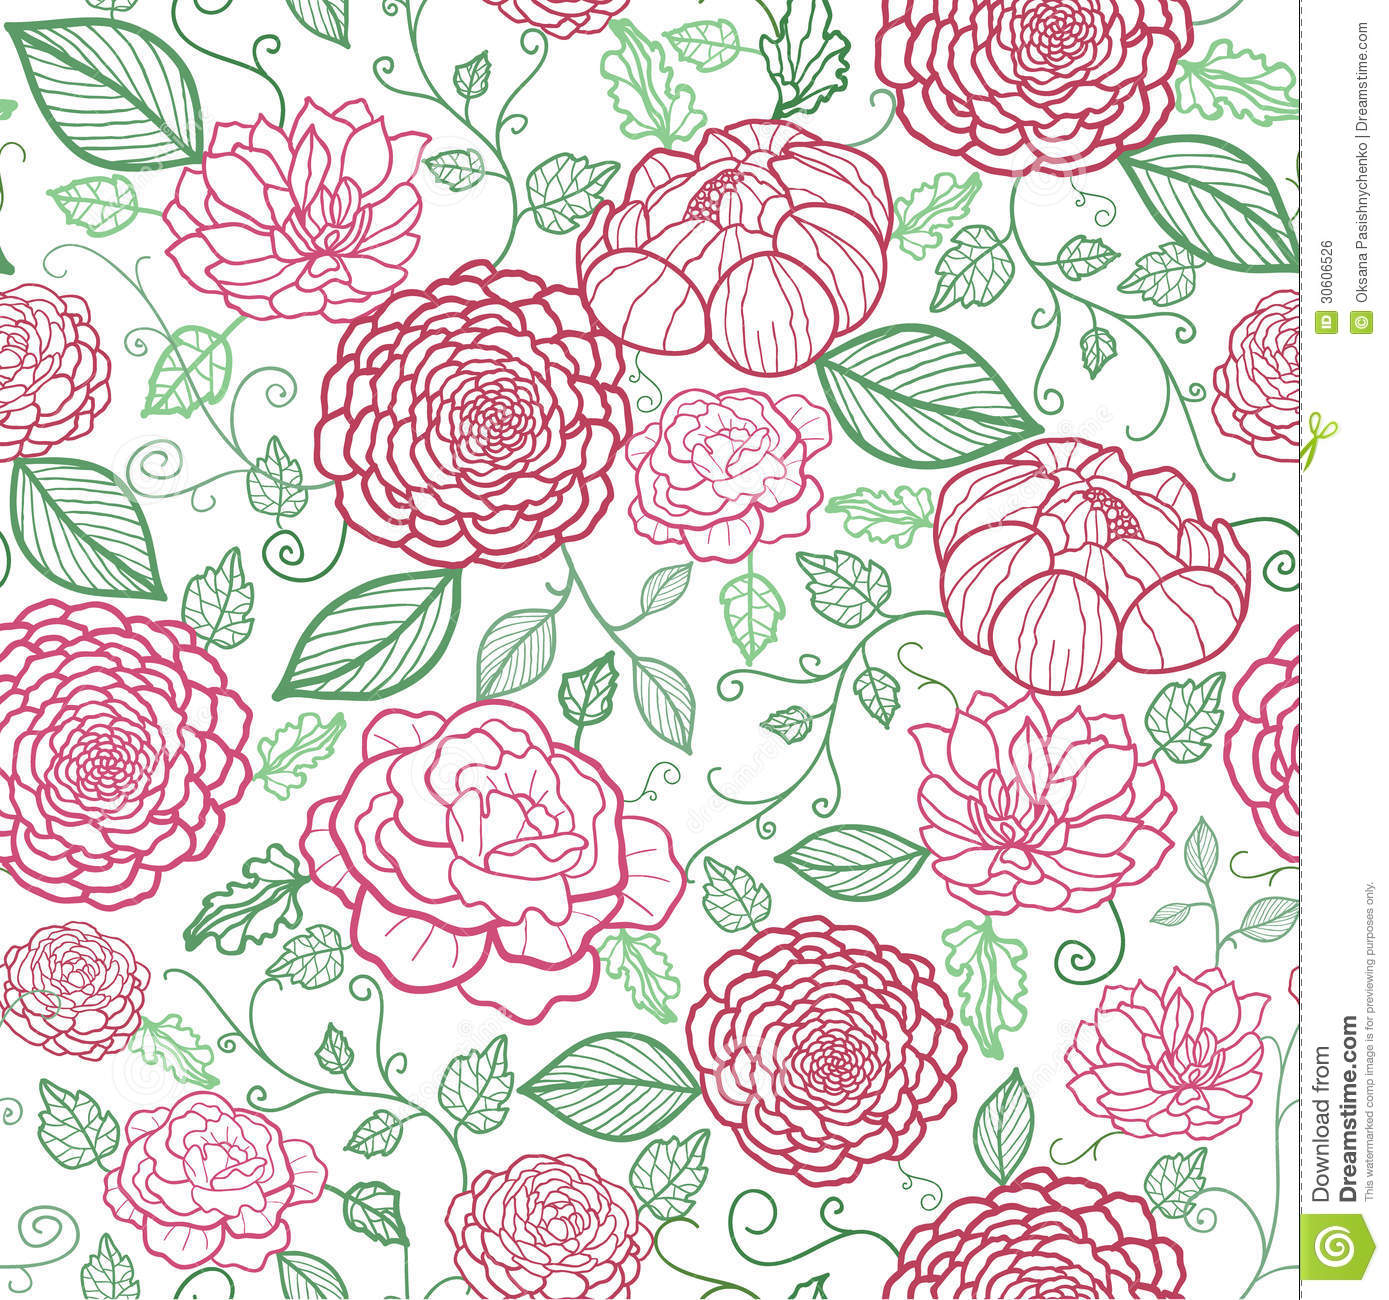 Flower Frame Line Drawing : Floral line art seamless pattern background royalty free